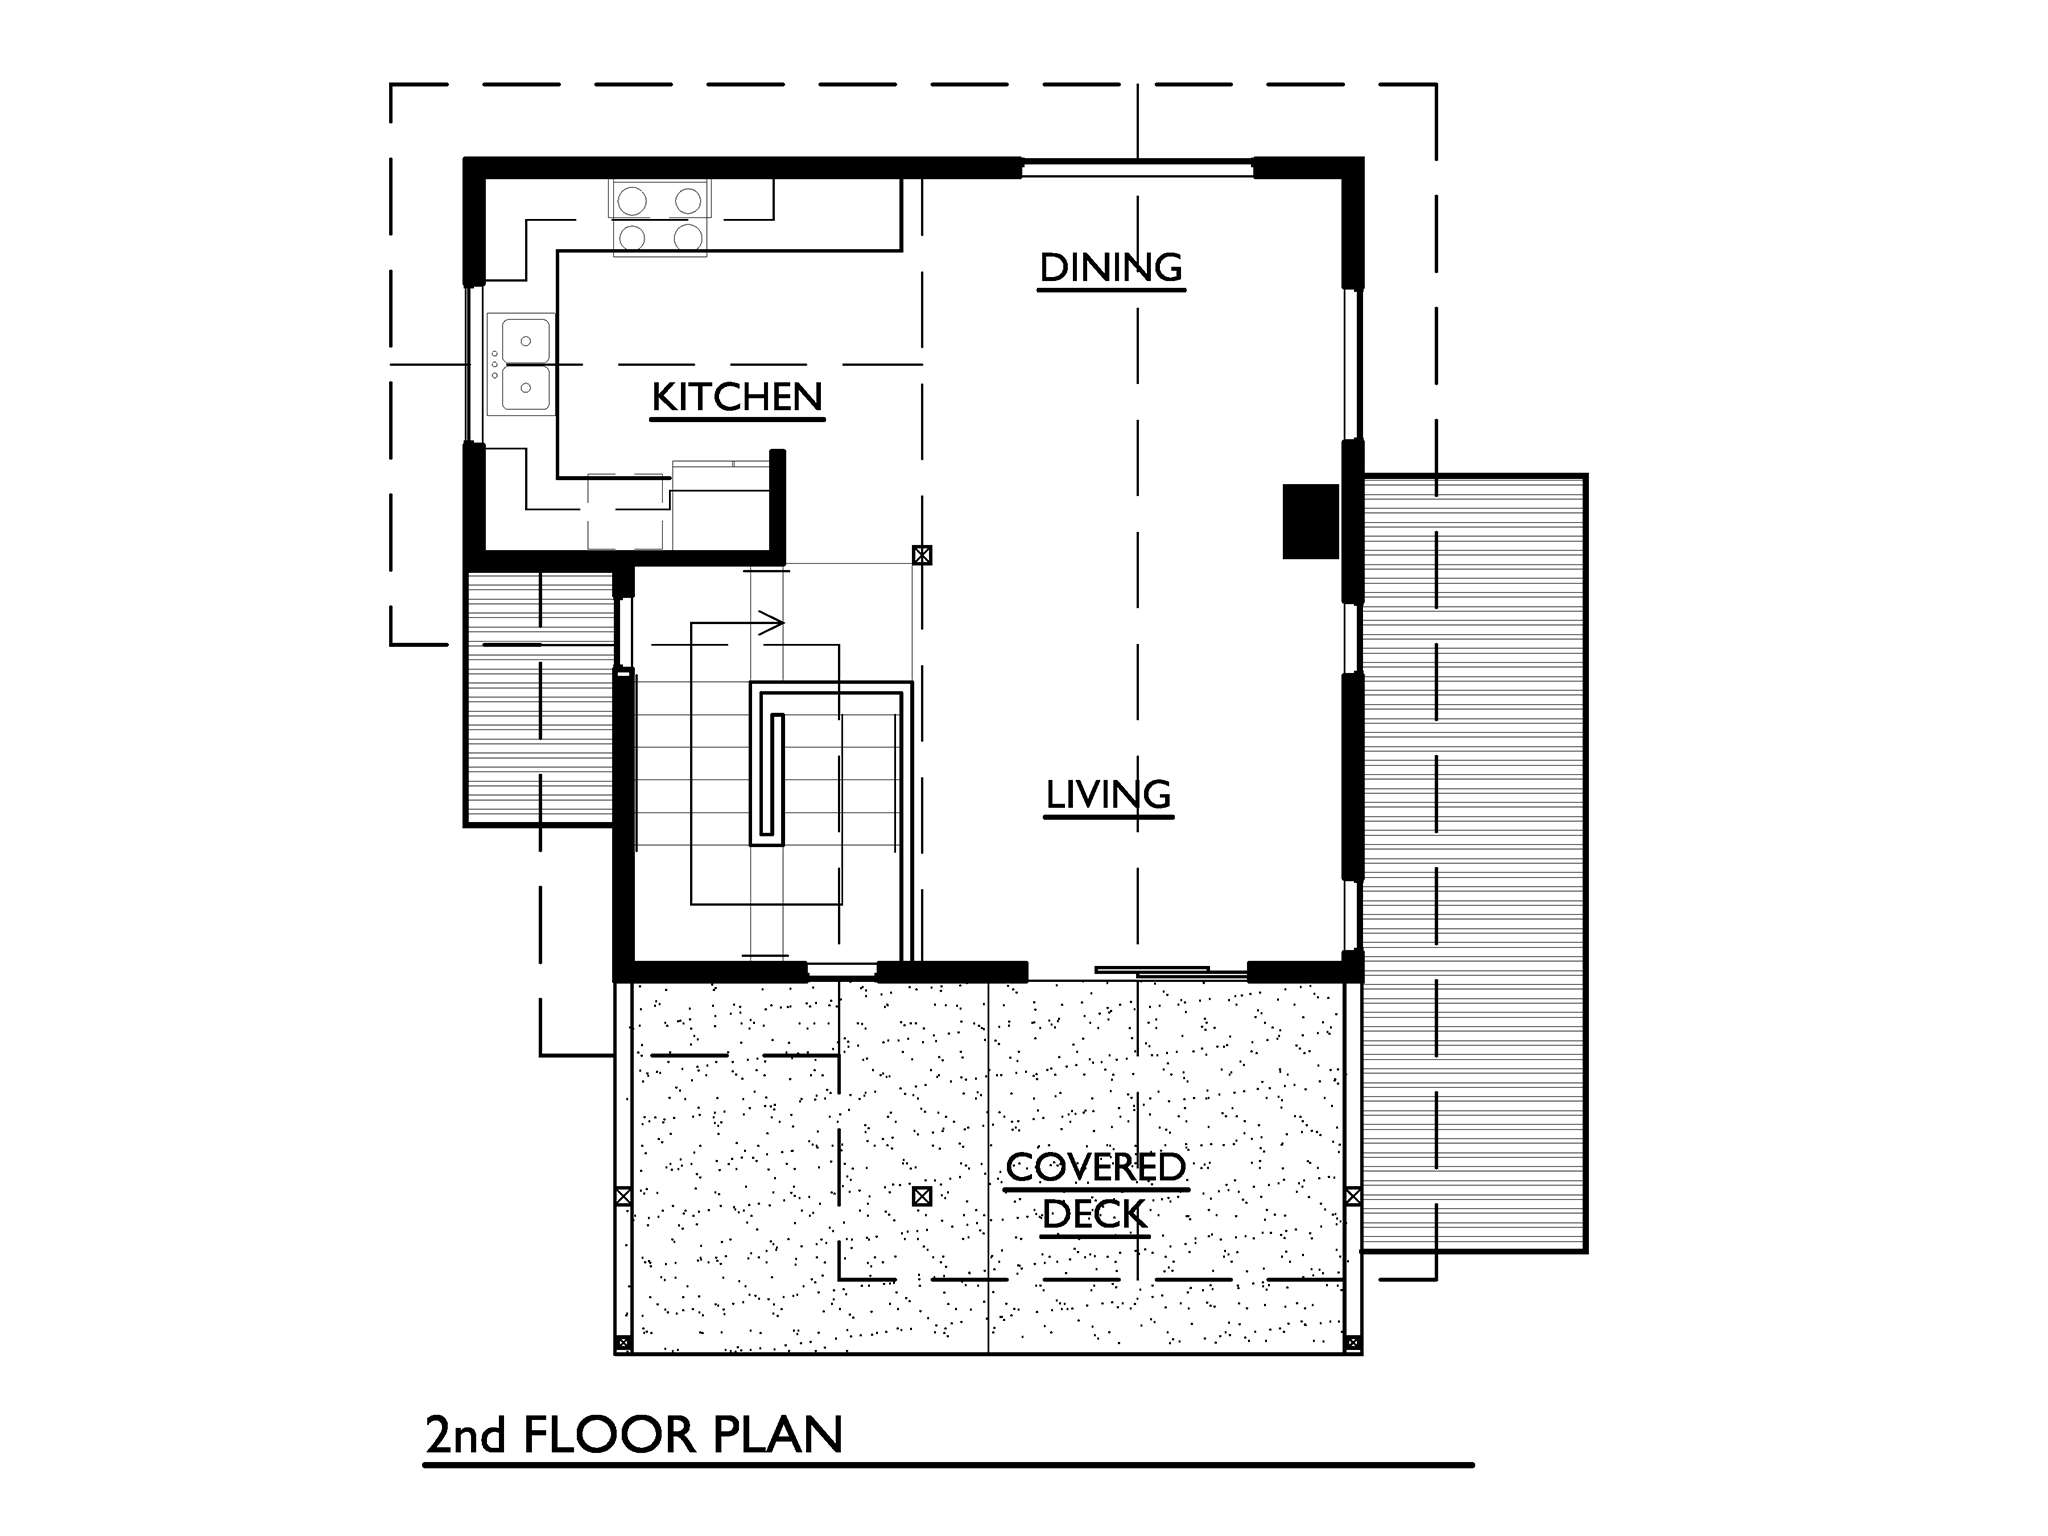 Small 3 Bedroom Cabin Plans Accessory Dwelling Units For In Laws Etc Time To Build